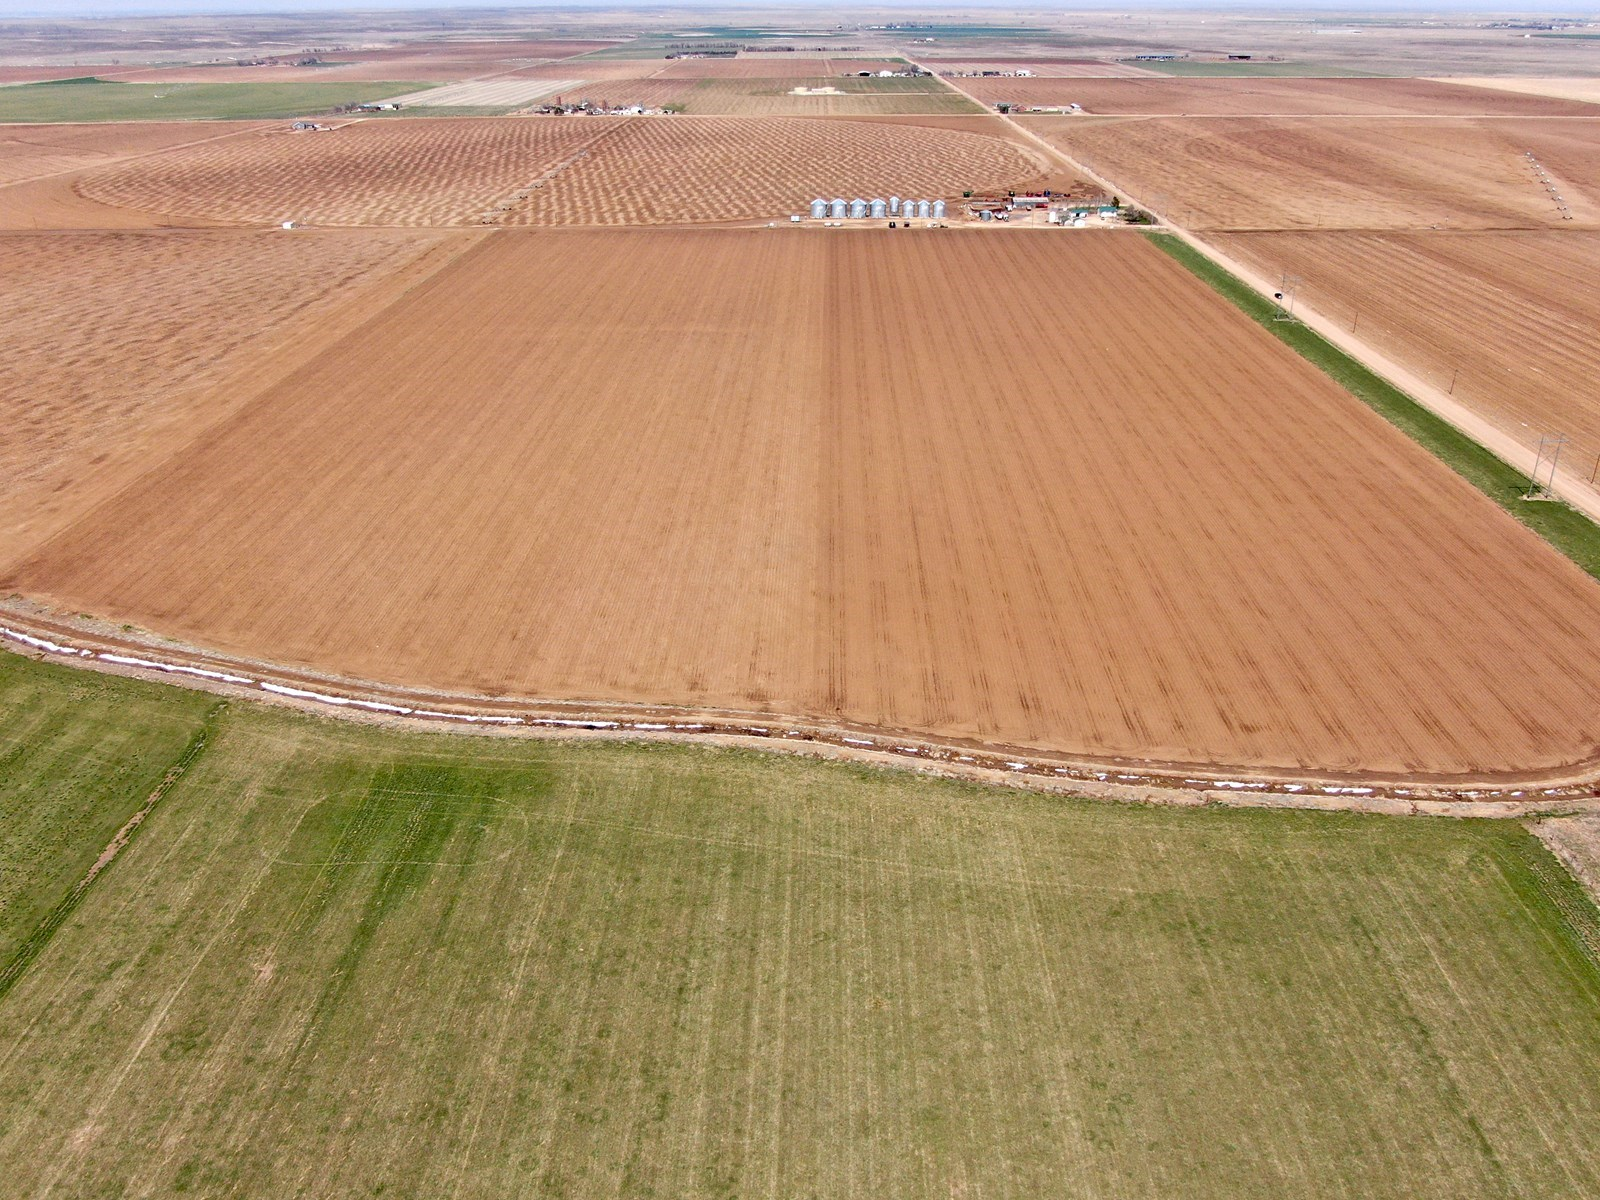 FARM FOR SALE IRRIGATED CROPLAND WELD COUNTY, CO KEENESBURG